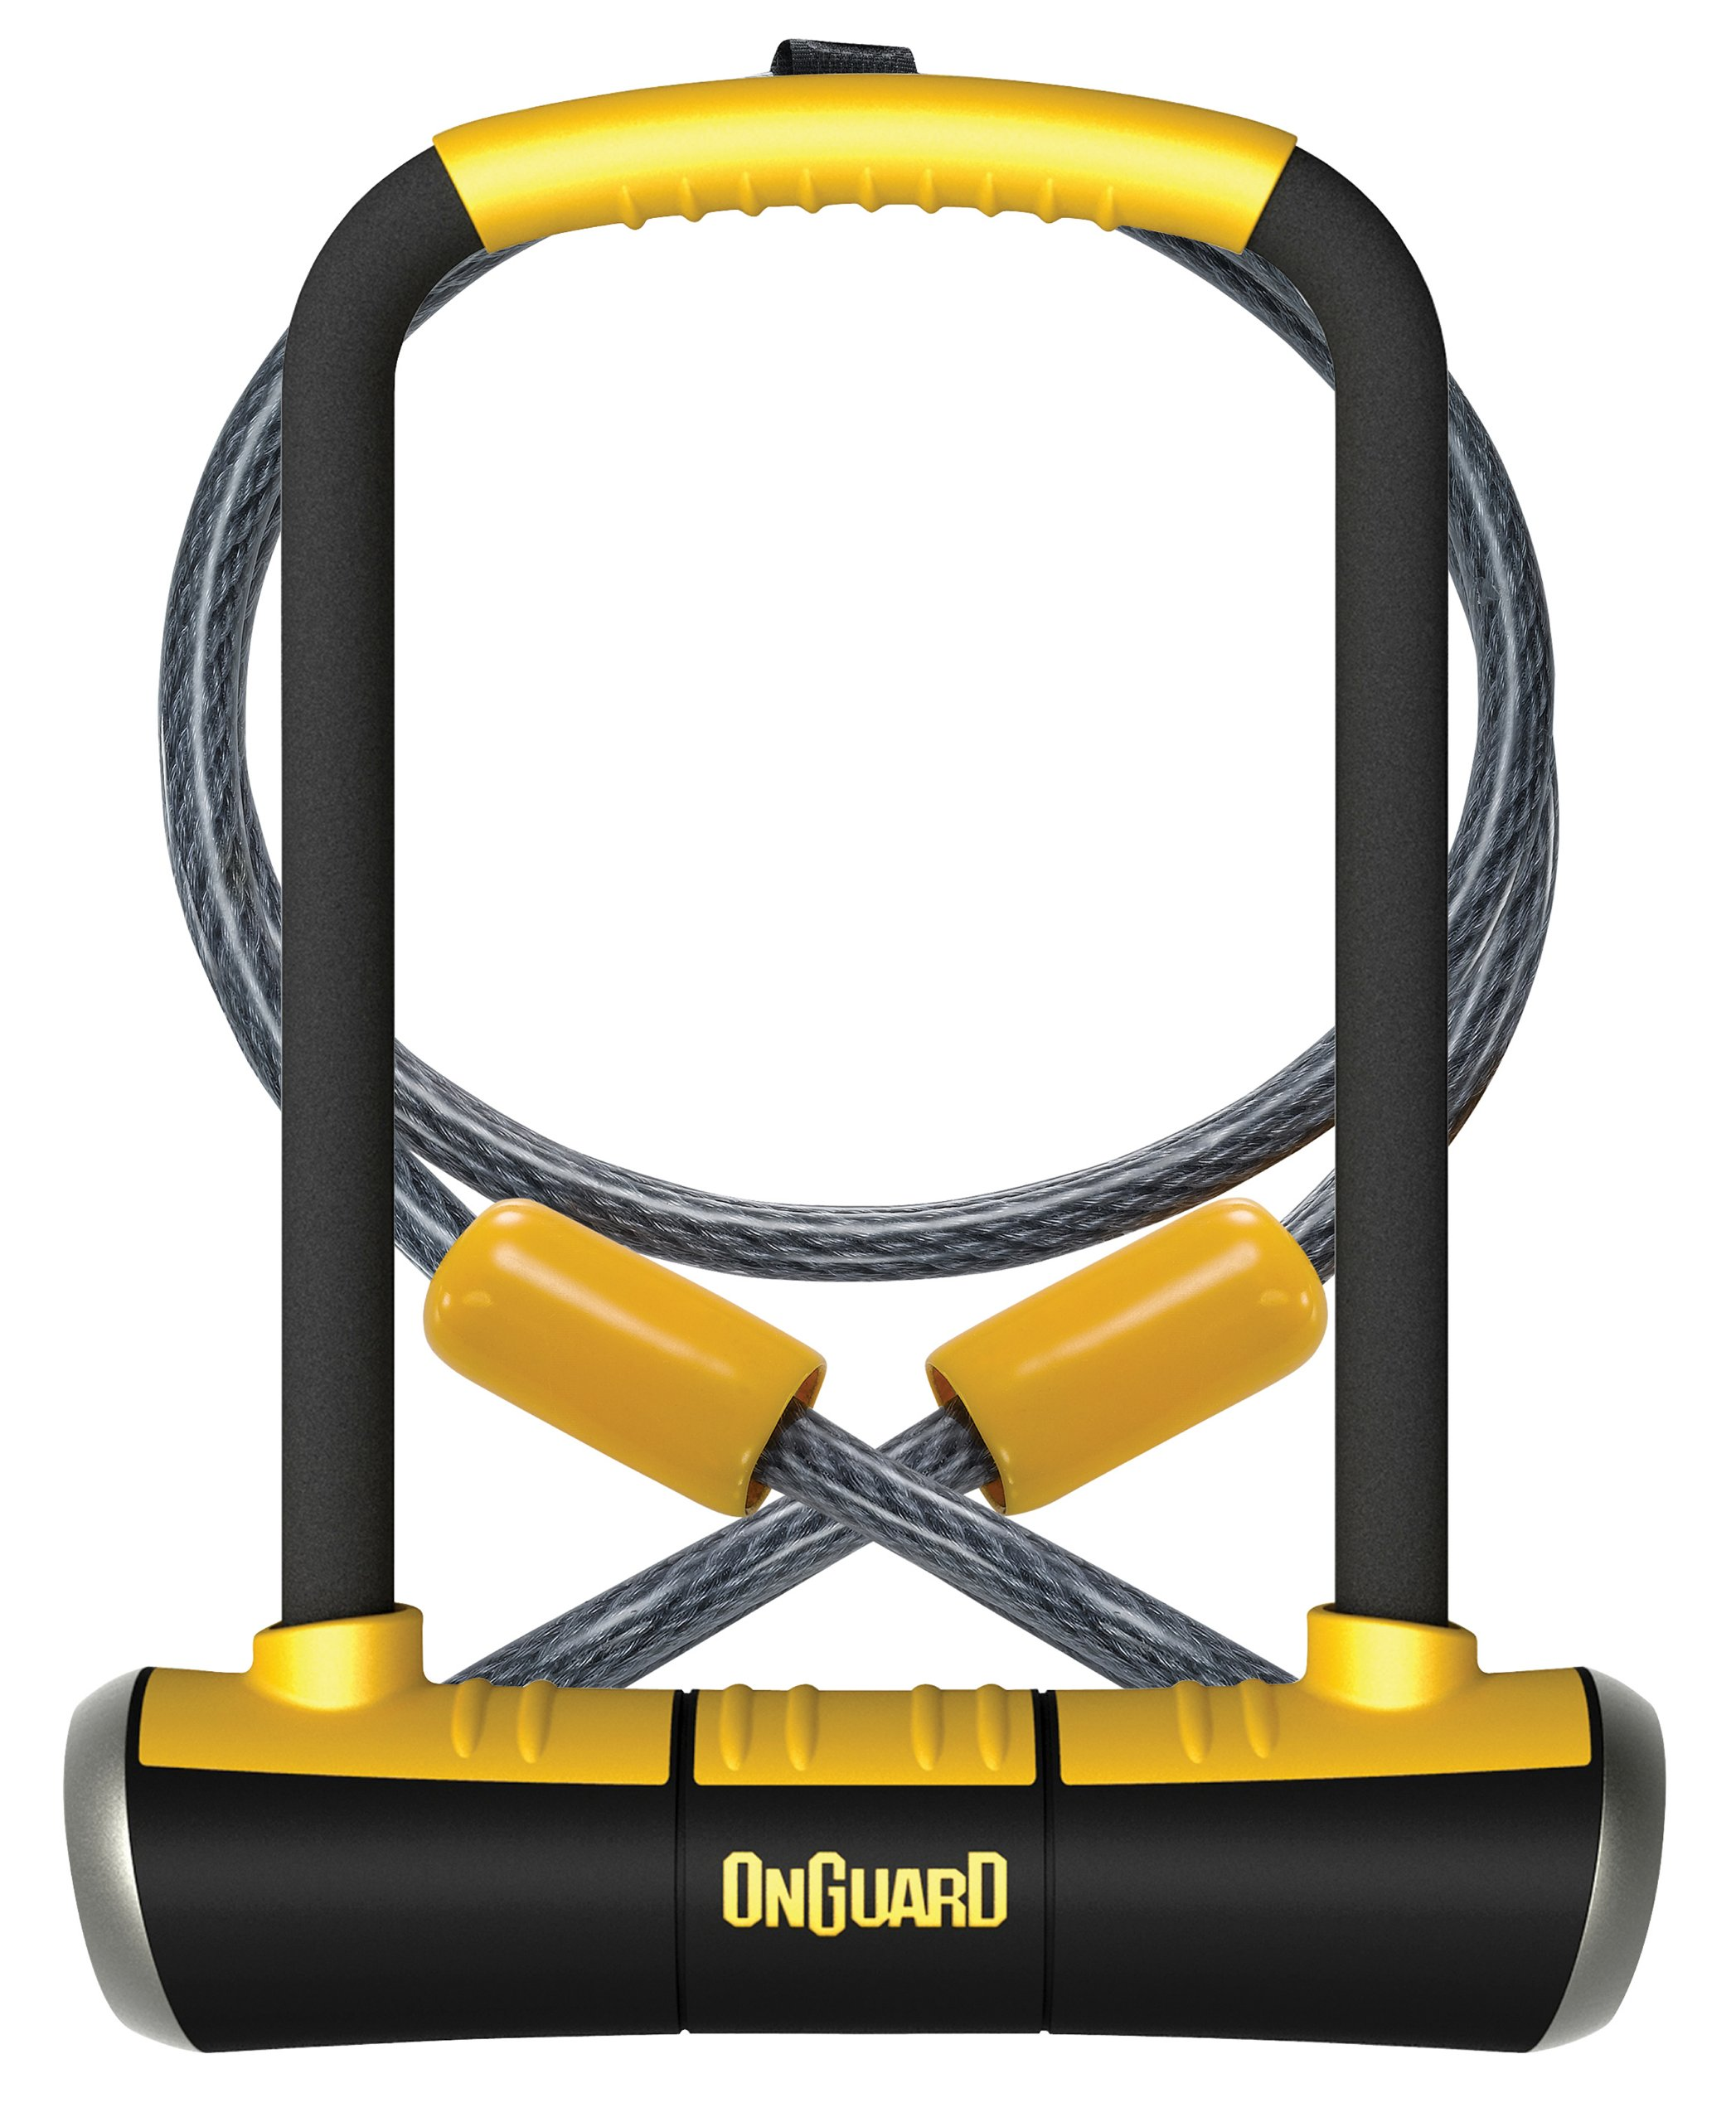 OnGuard Double-Team PITBULL U-Lock and Cable by ONGUARD